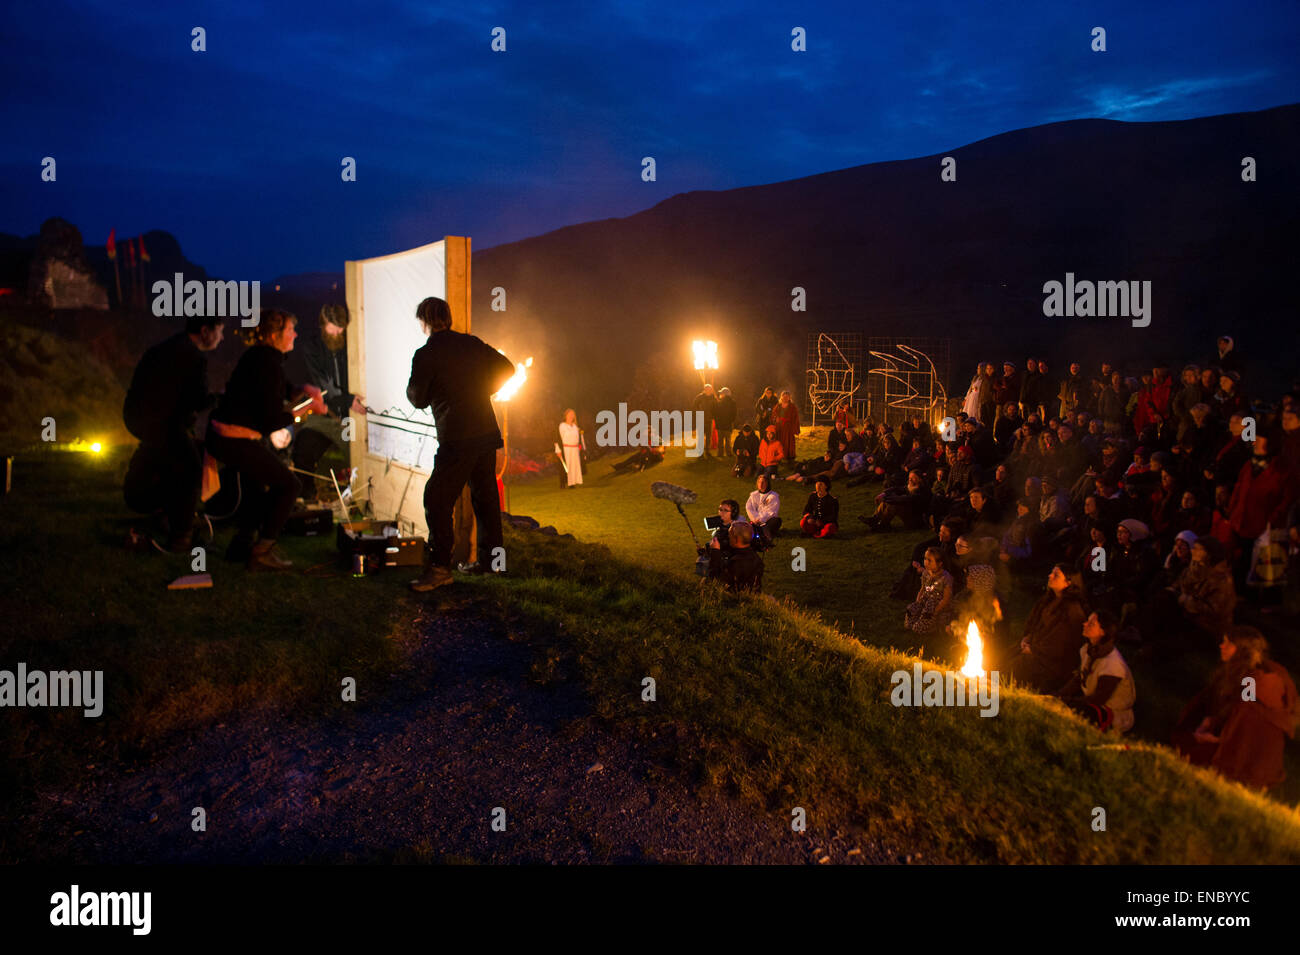 Castell y Bere, Snowdonia, Wales UK. Friday 01 May 2015  A unique public performances in the grounds of the 13th - Stock Image